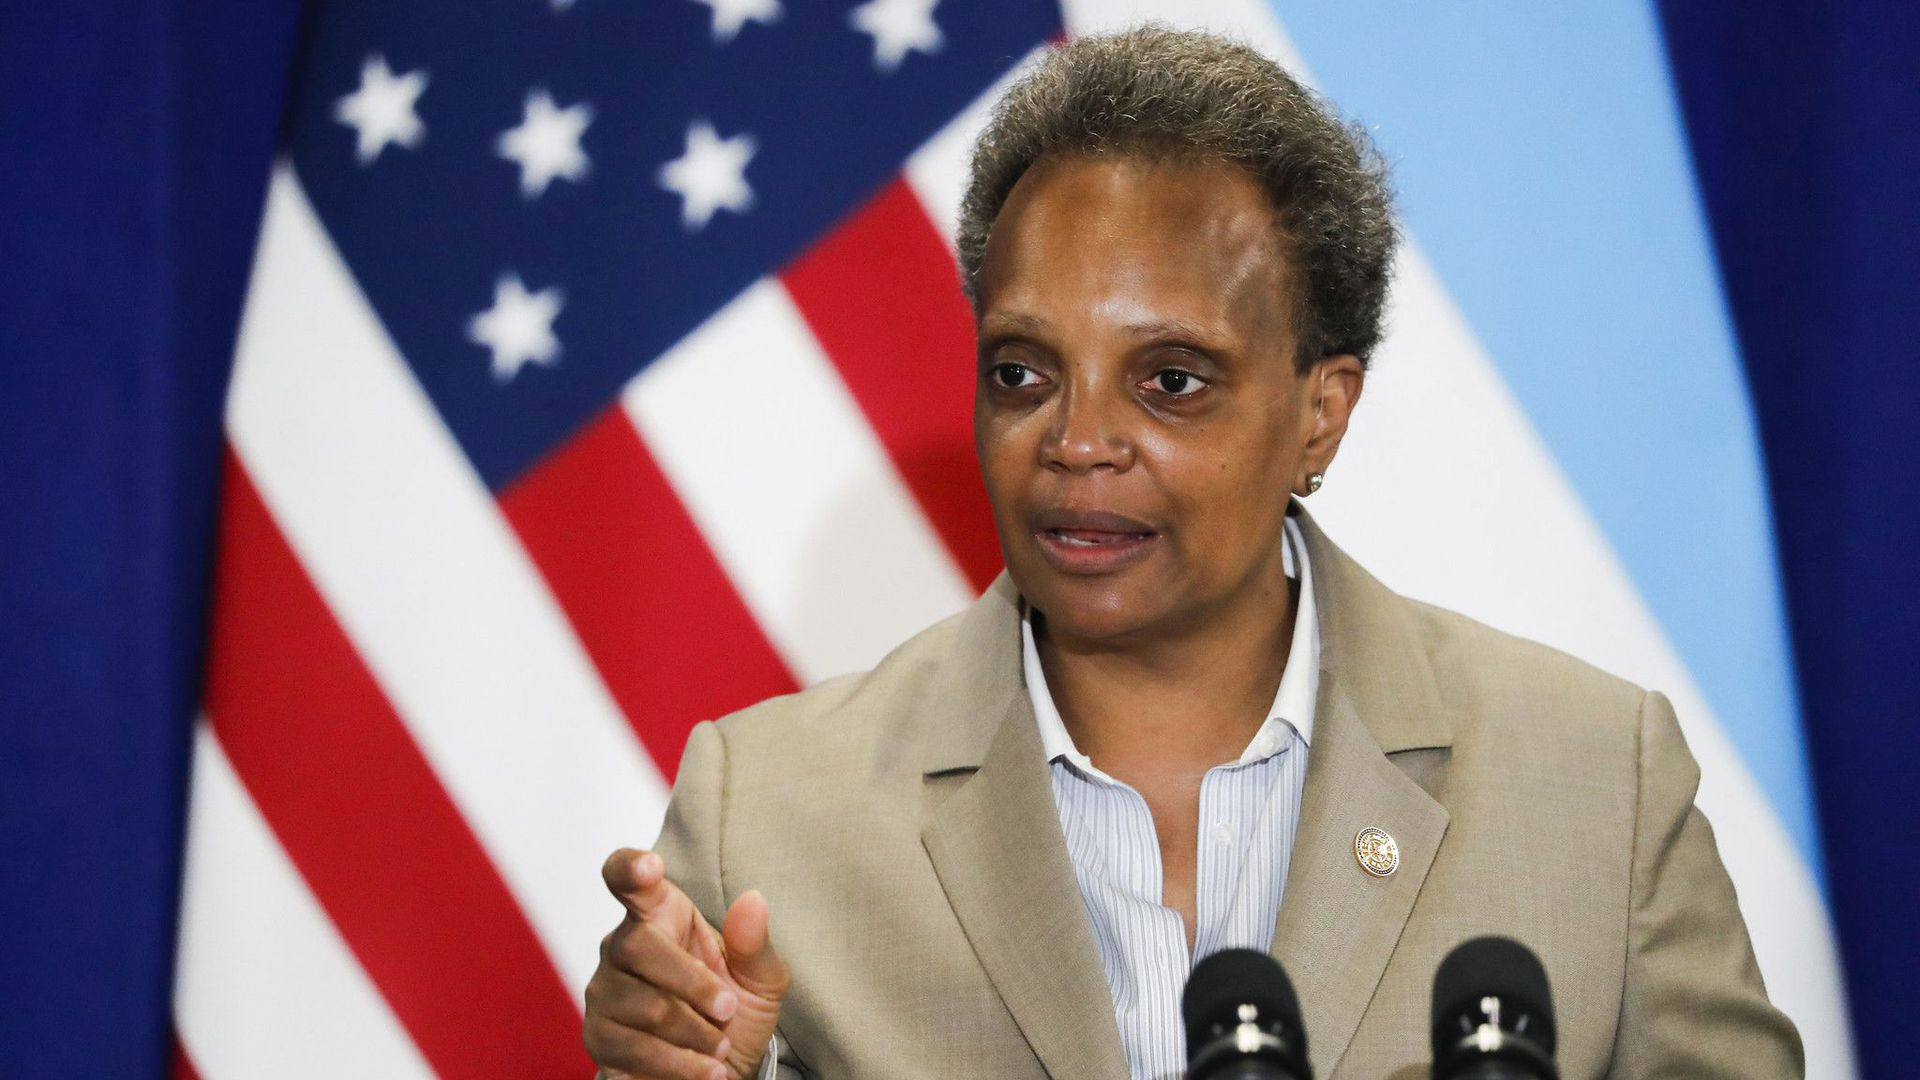 Chicago Mayor Lori Lightfoot speaks in front of a microphone